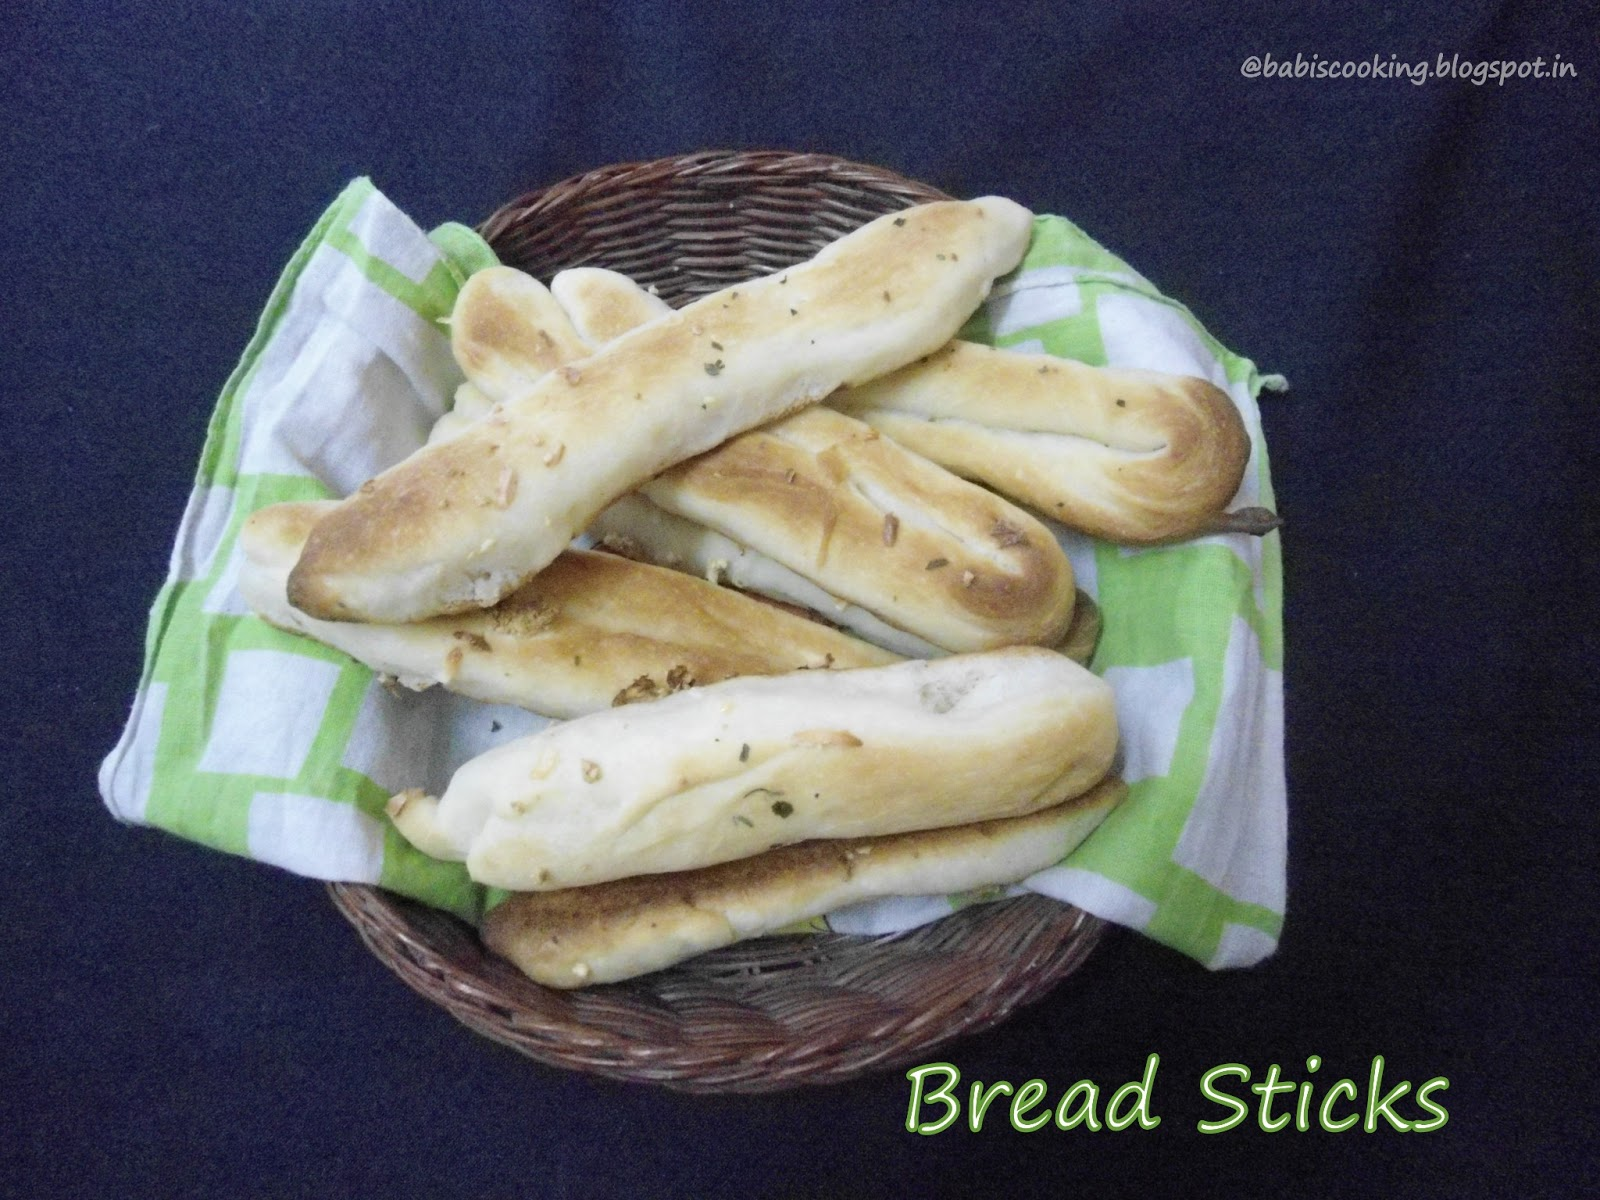 Breads  Sticks  | How to make Bread Sticks